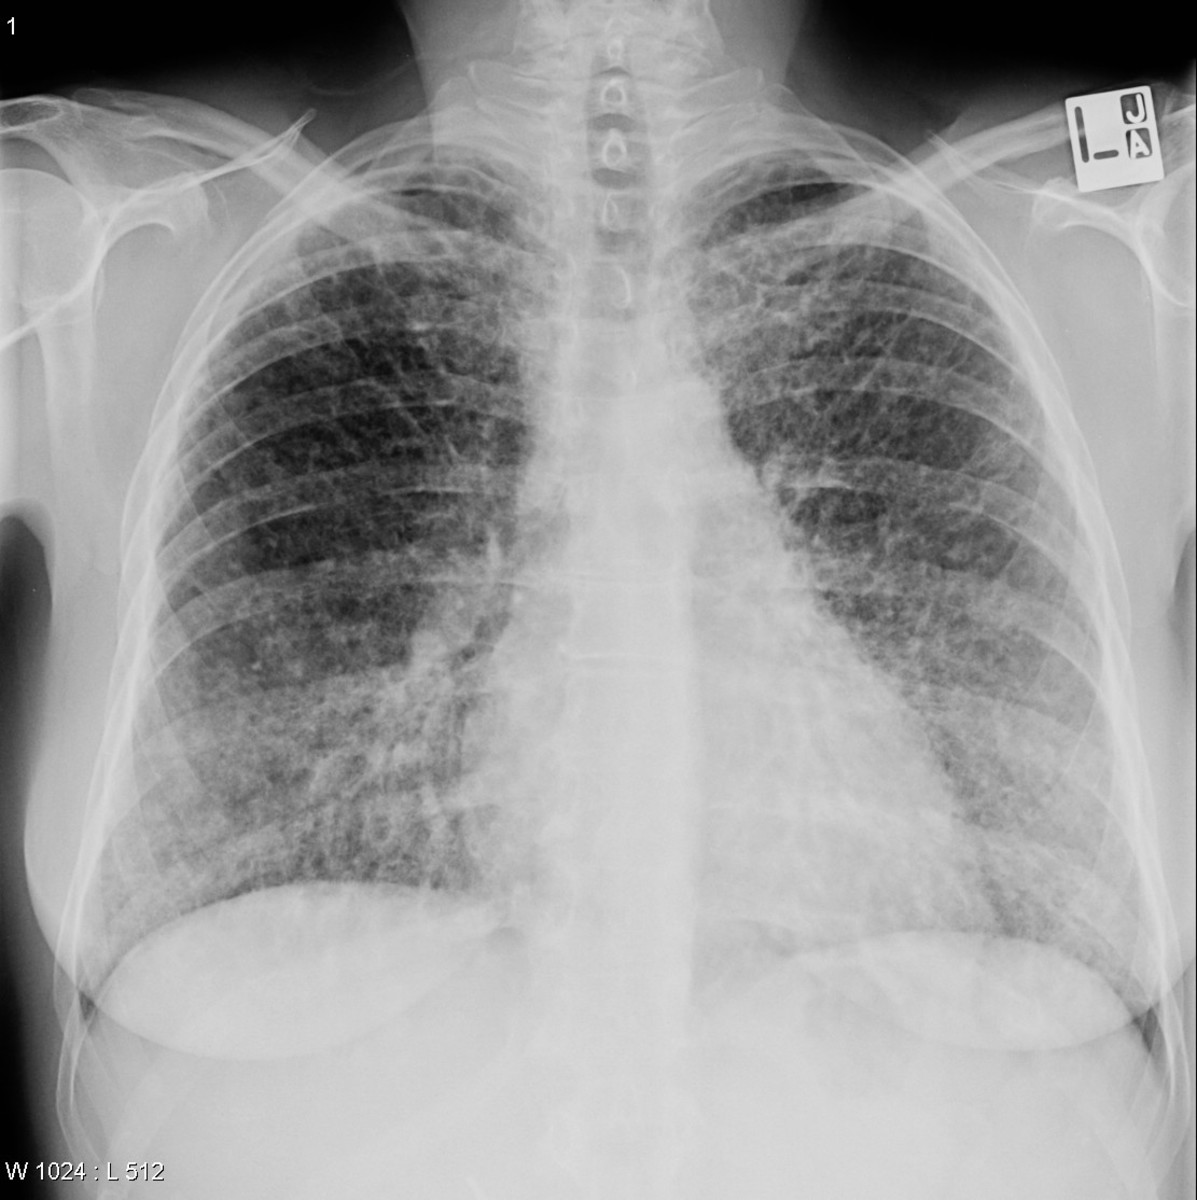 The granulomas are most often located in the lungs or the lymph nodes, but any organ can be affected. Onset is usually gradual. Sarcoidosis may be asymptomatic or chronic.